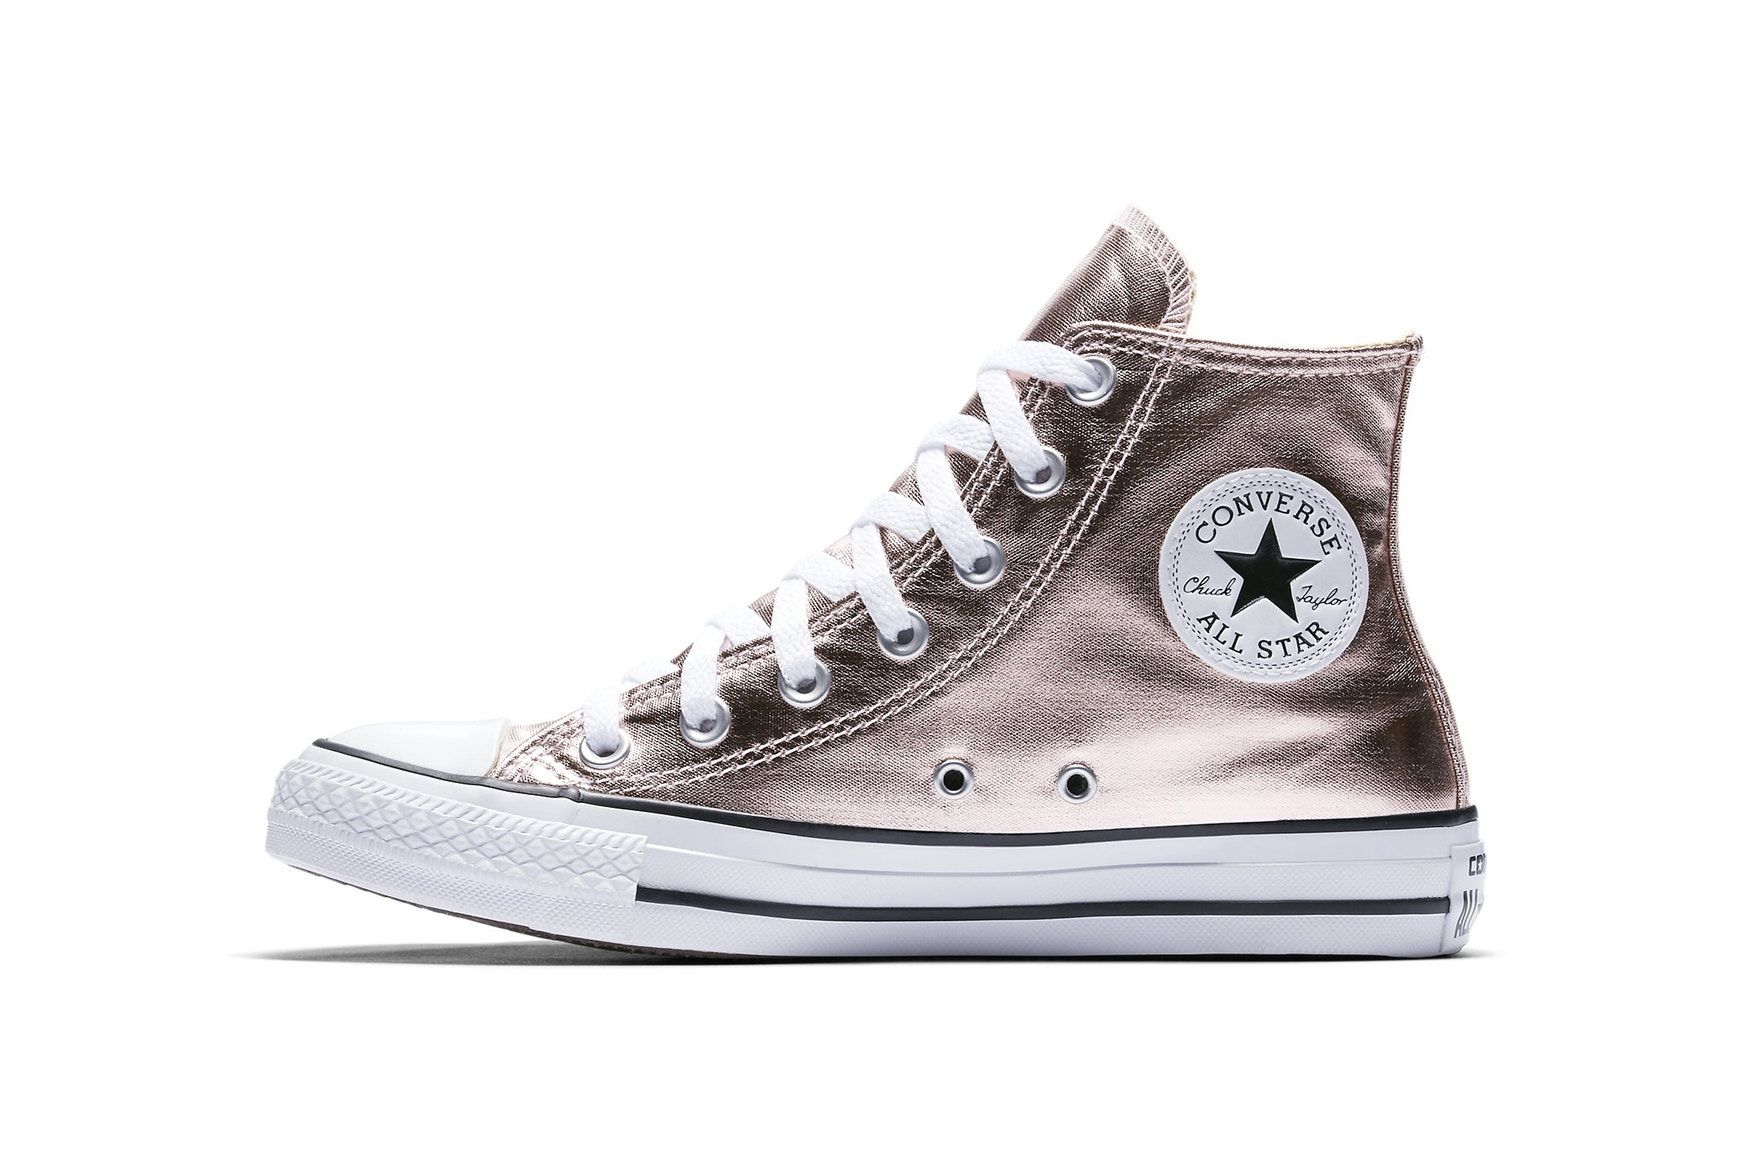 ac387a608c7d2a Converse s Chuck Taylor All Star Takes Home the Rose Gold Medal ...